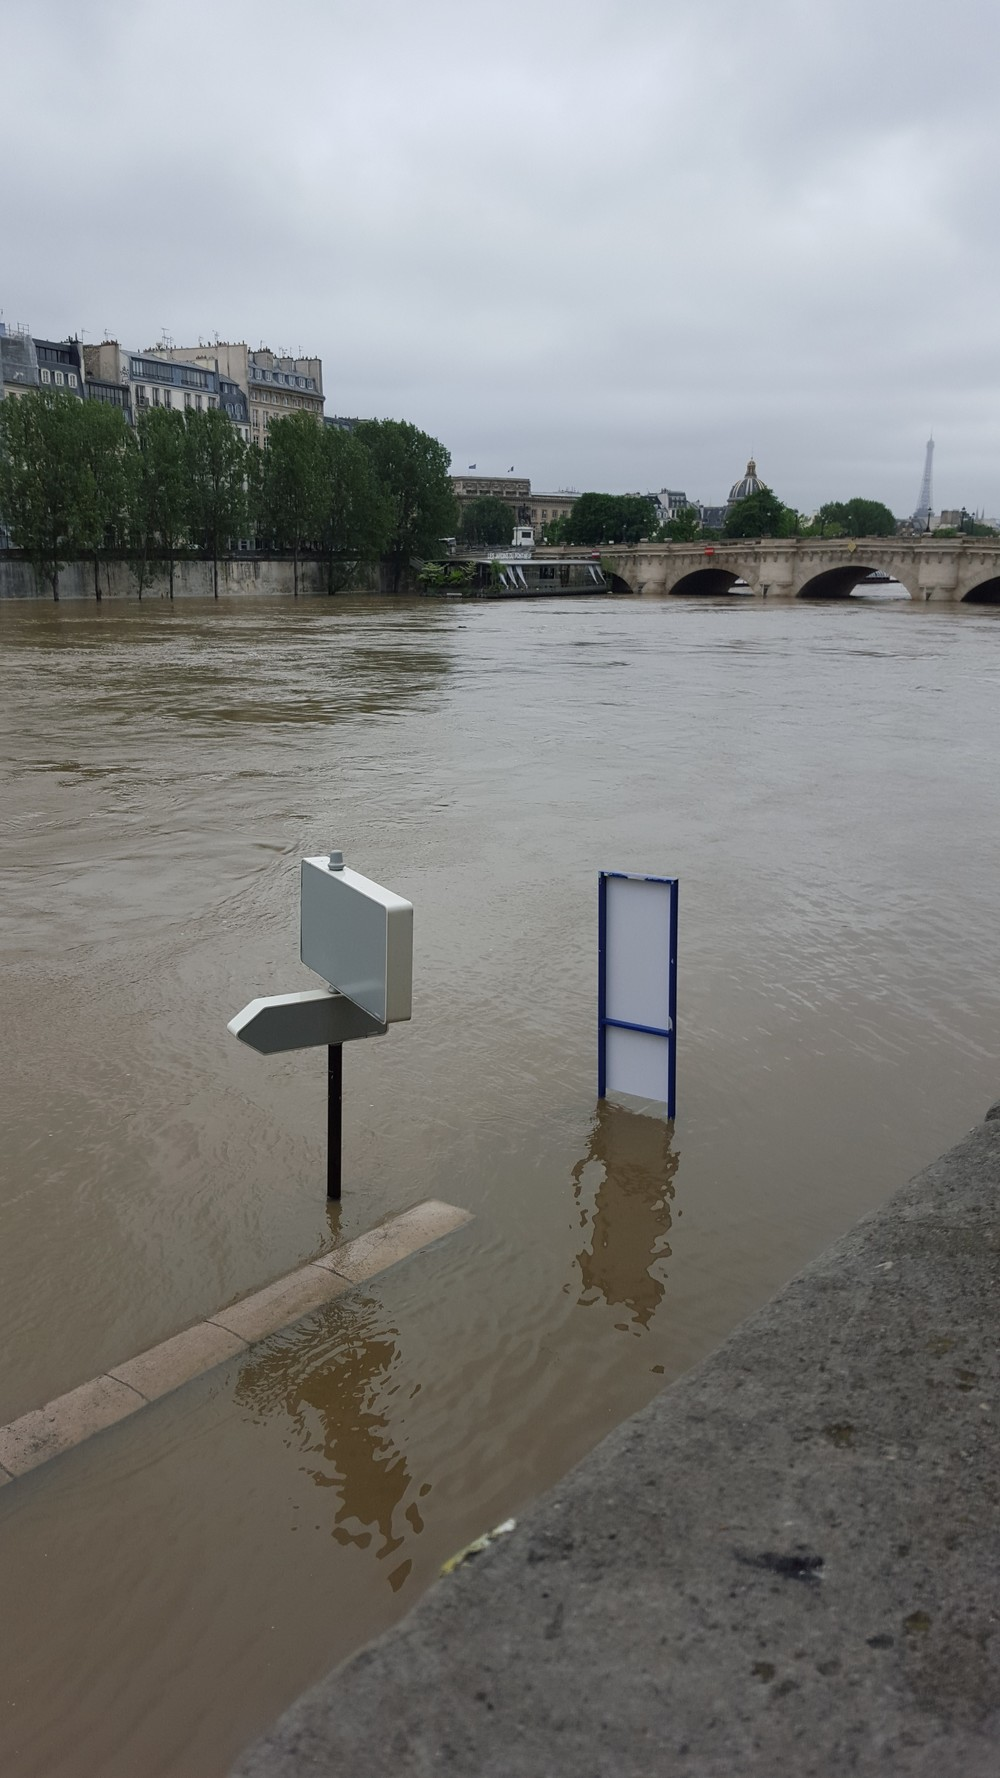 Those signs are actually on part of the roadway that travels the length of the Seine.